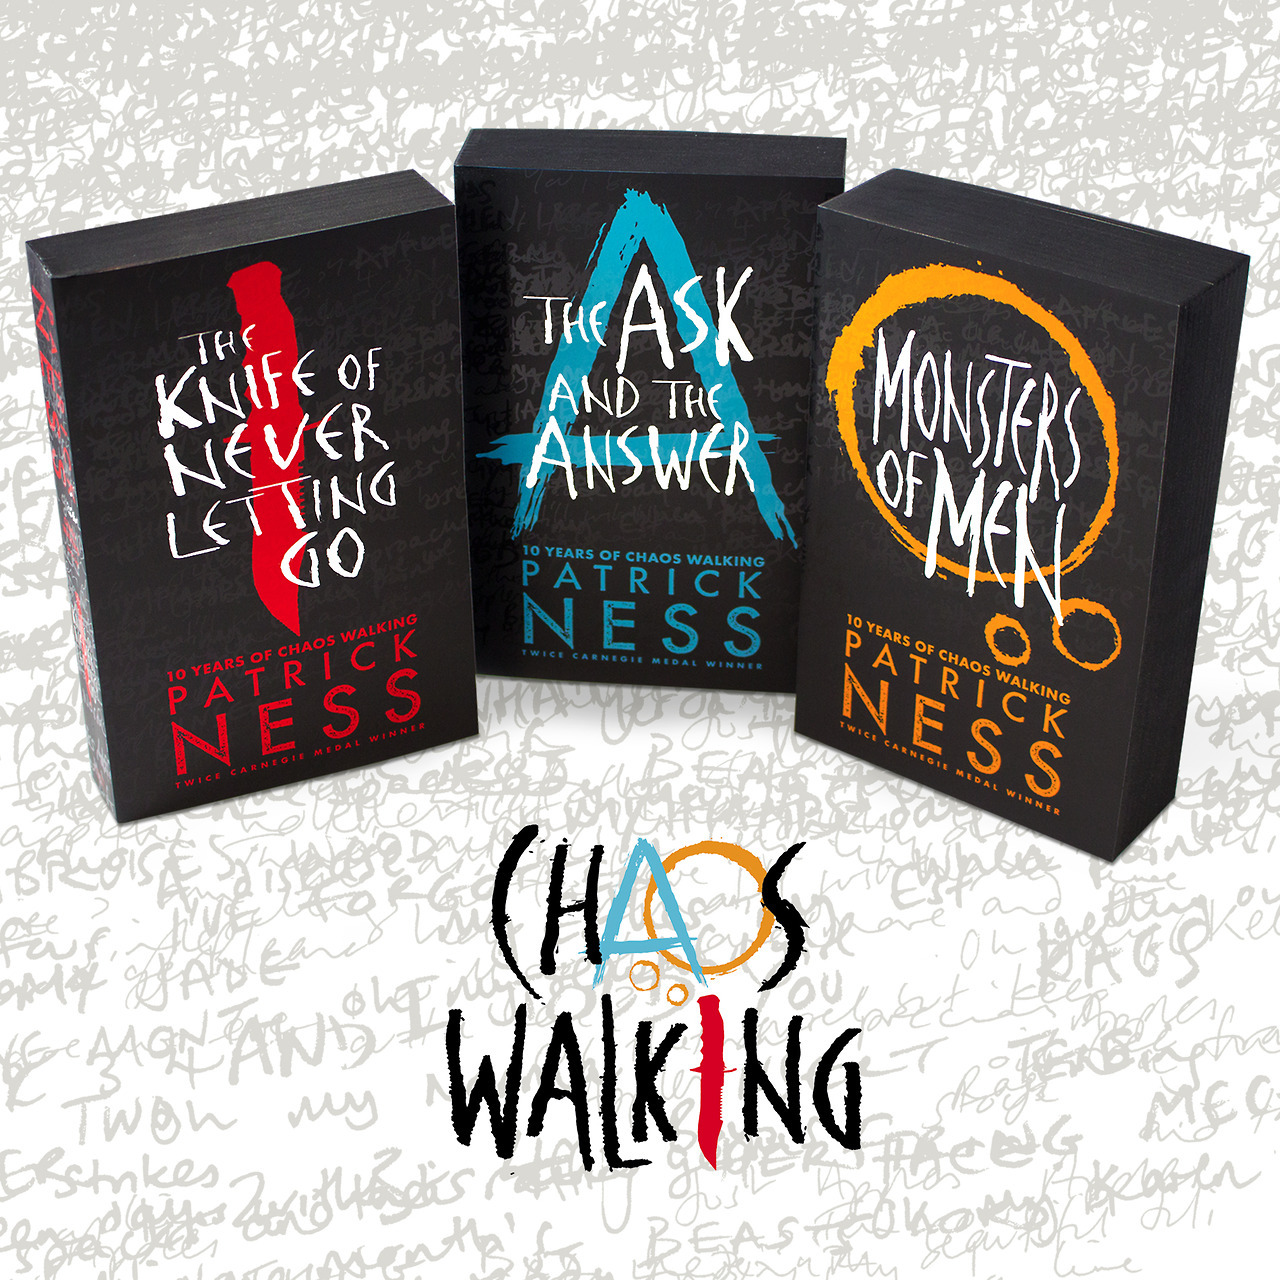 The Knife of Never Letting Go is the first book in Patrick Ness' Chaos Walking Trilogy.  Ness also wrote A Monster Calls.